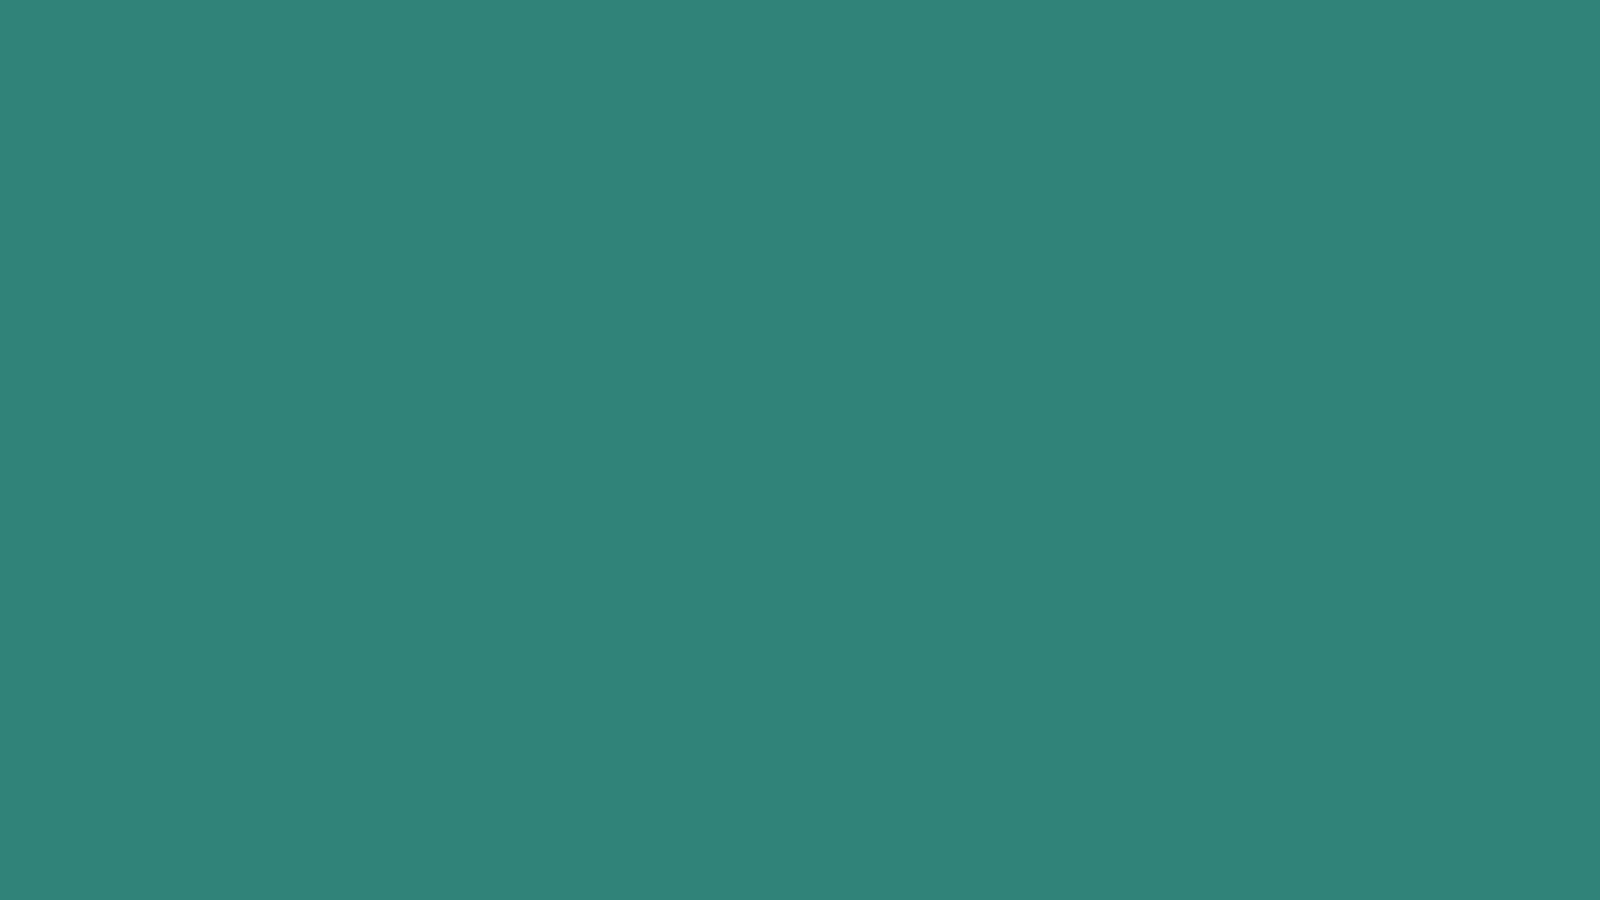 1600x900 Celadon Green Solid Color Background